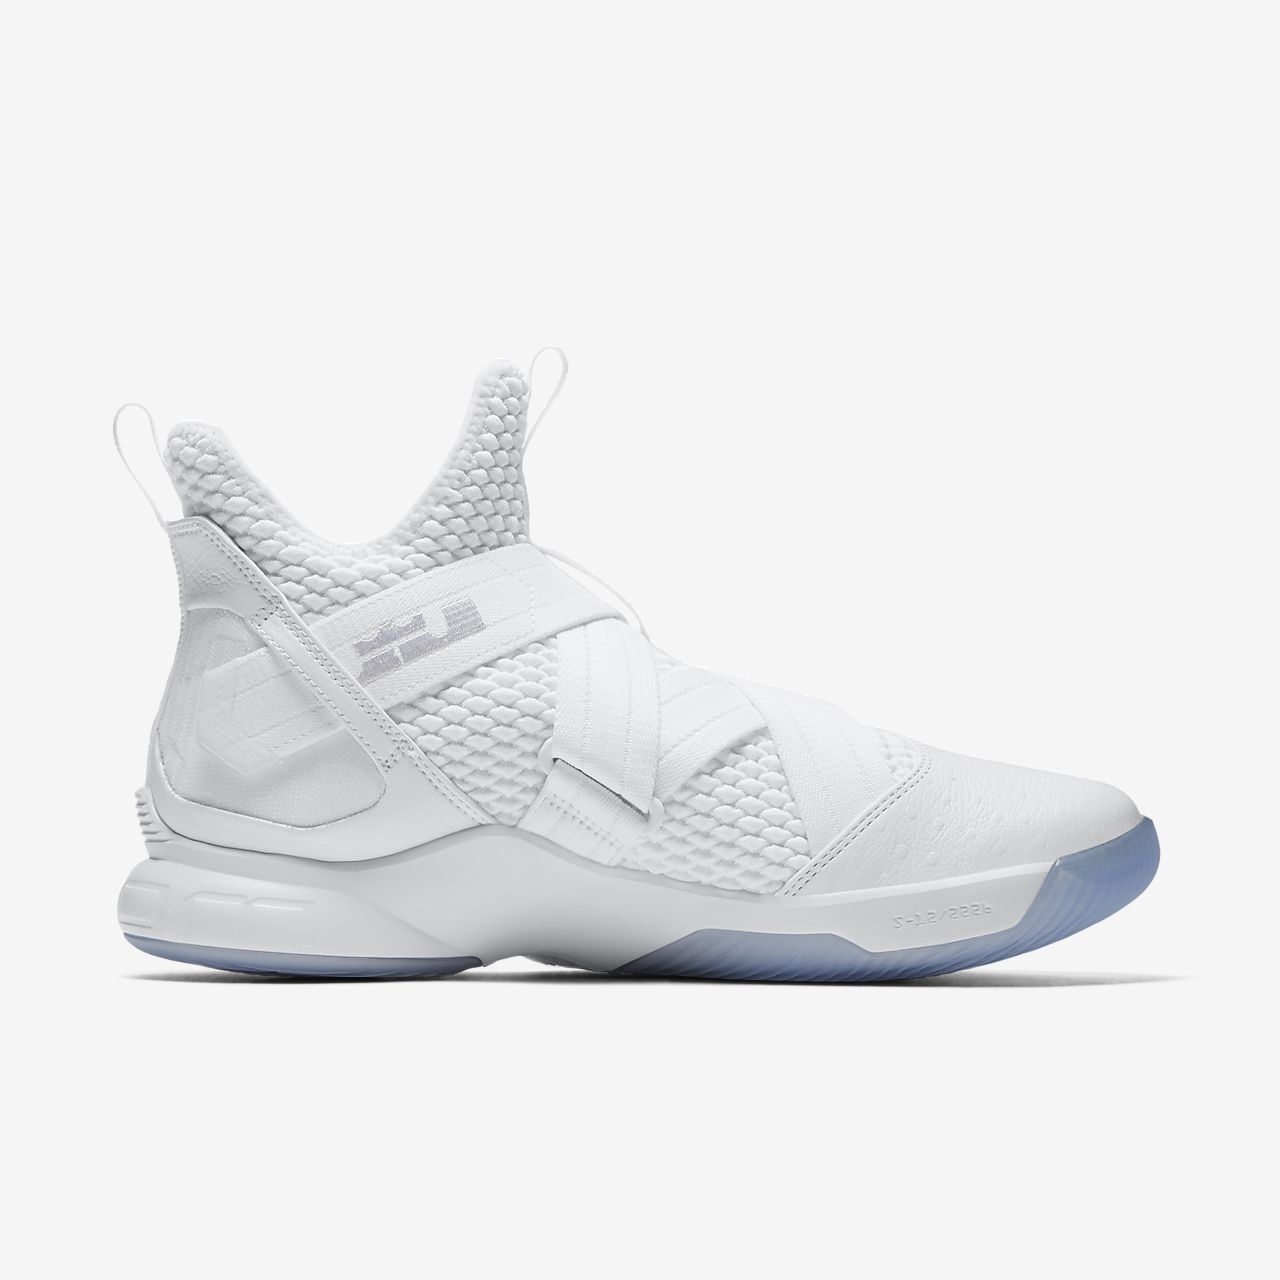 2e05a42f53b Low Resolution LeBron Soldier 12 SFG Basketballschuh LeBron Soldier 12 SFG  Basketballschuh